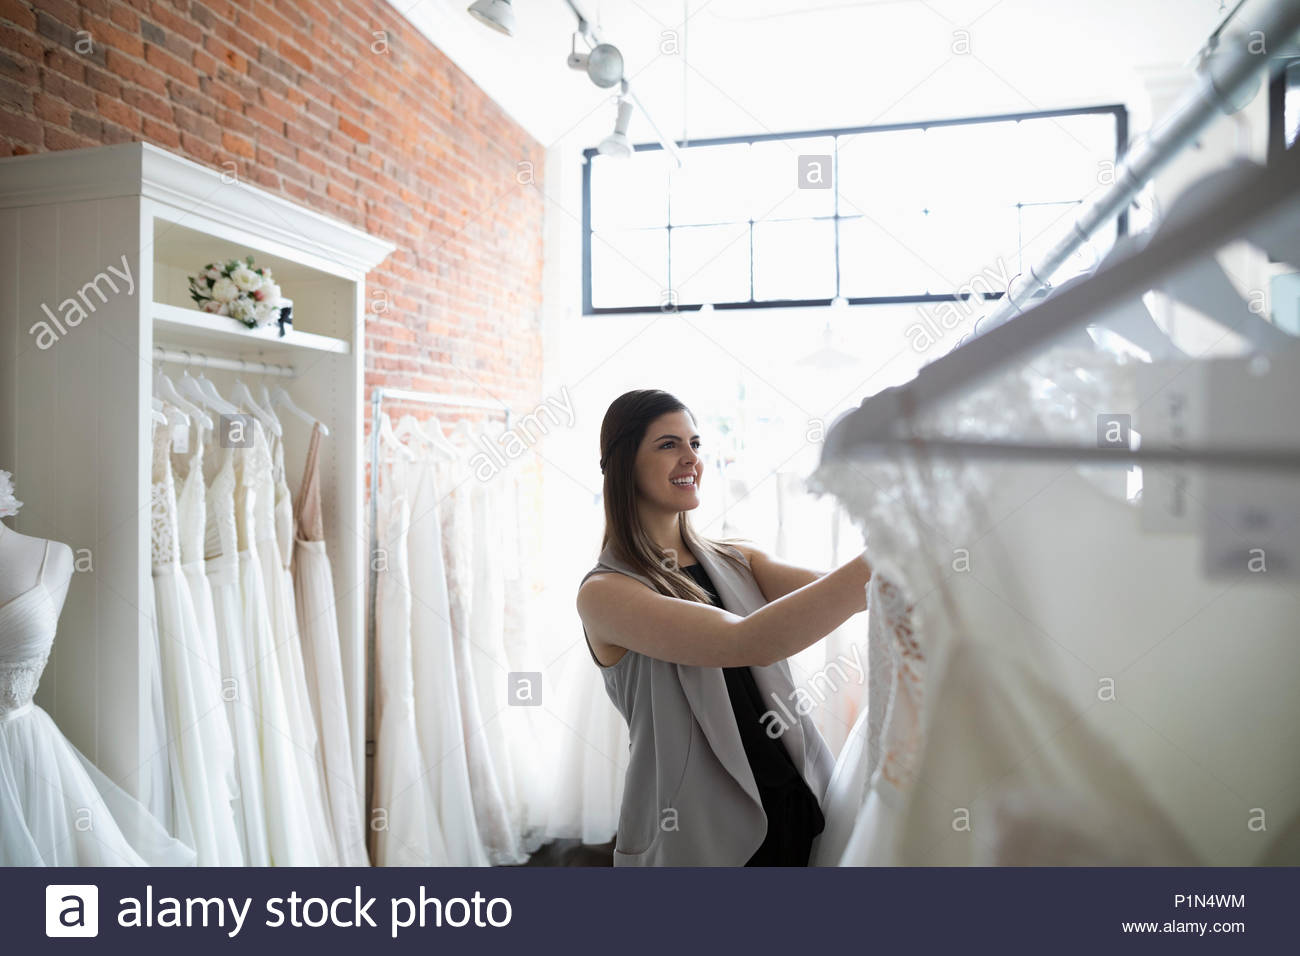 Bride shopping for wedding dresses in bridal boutique - Stock Image